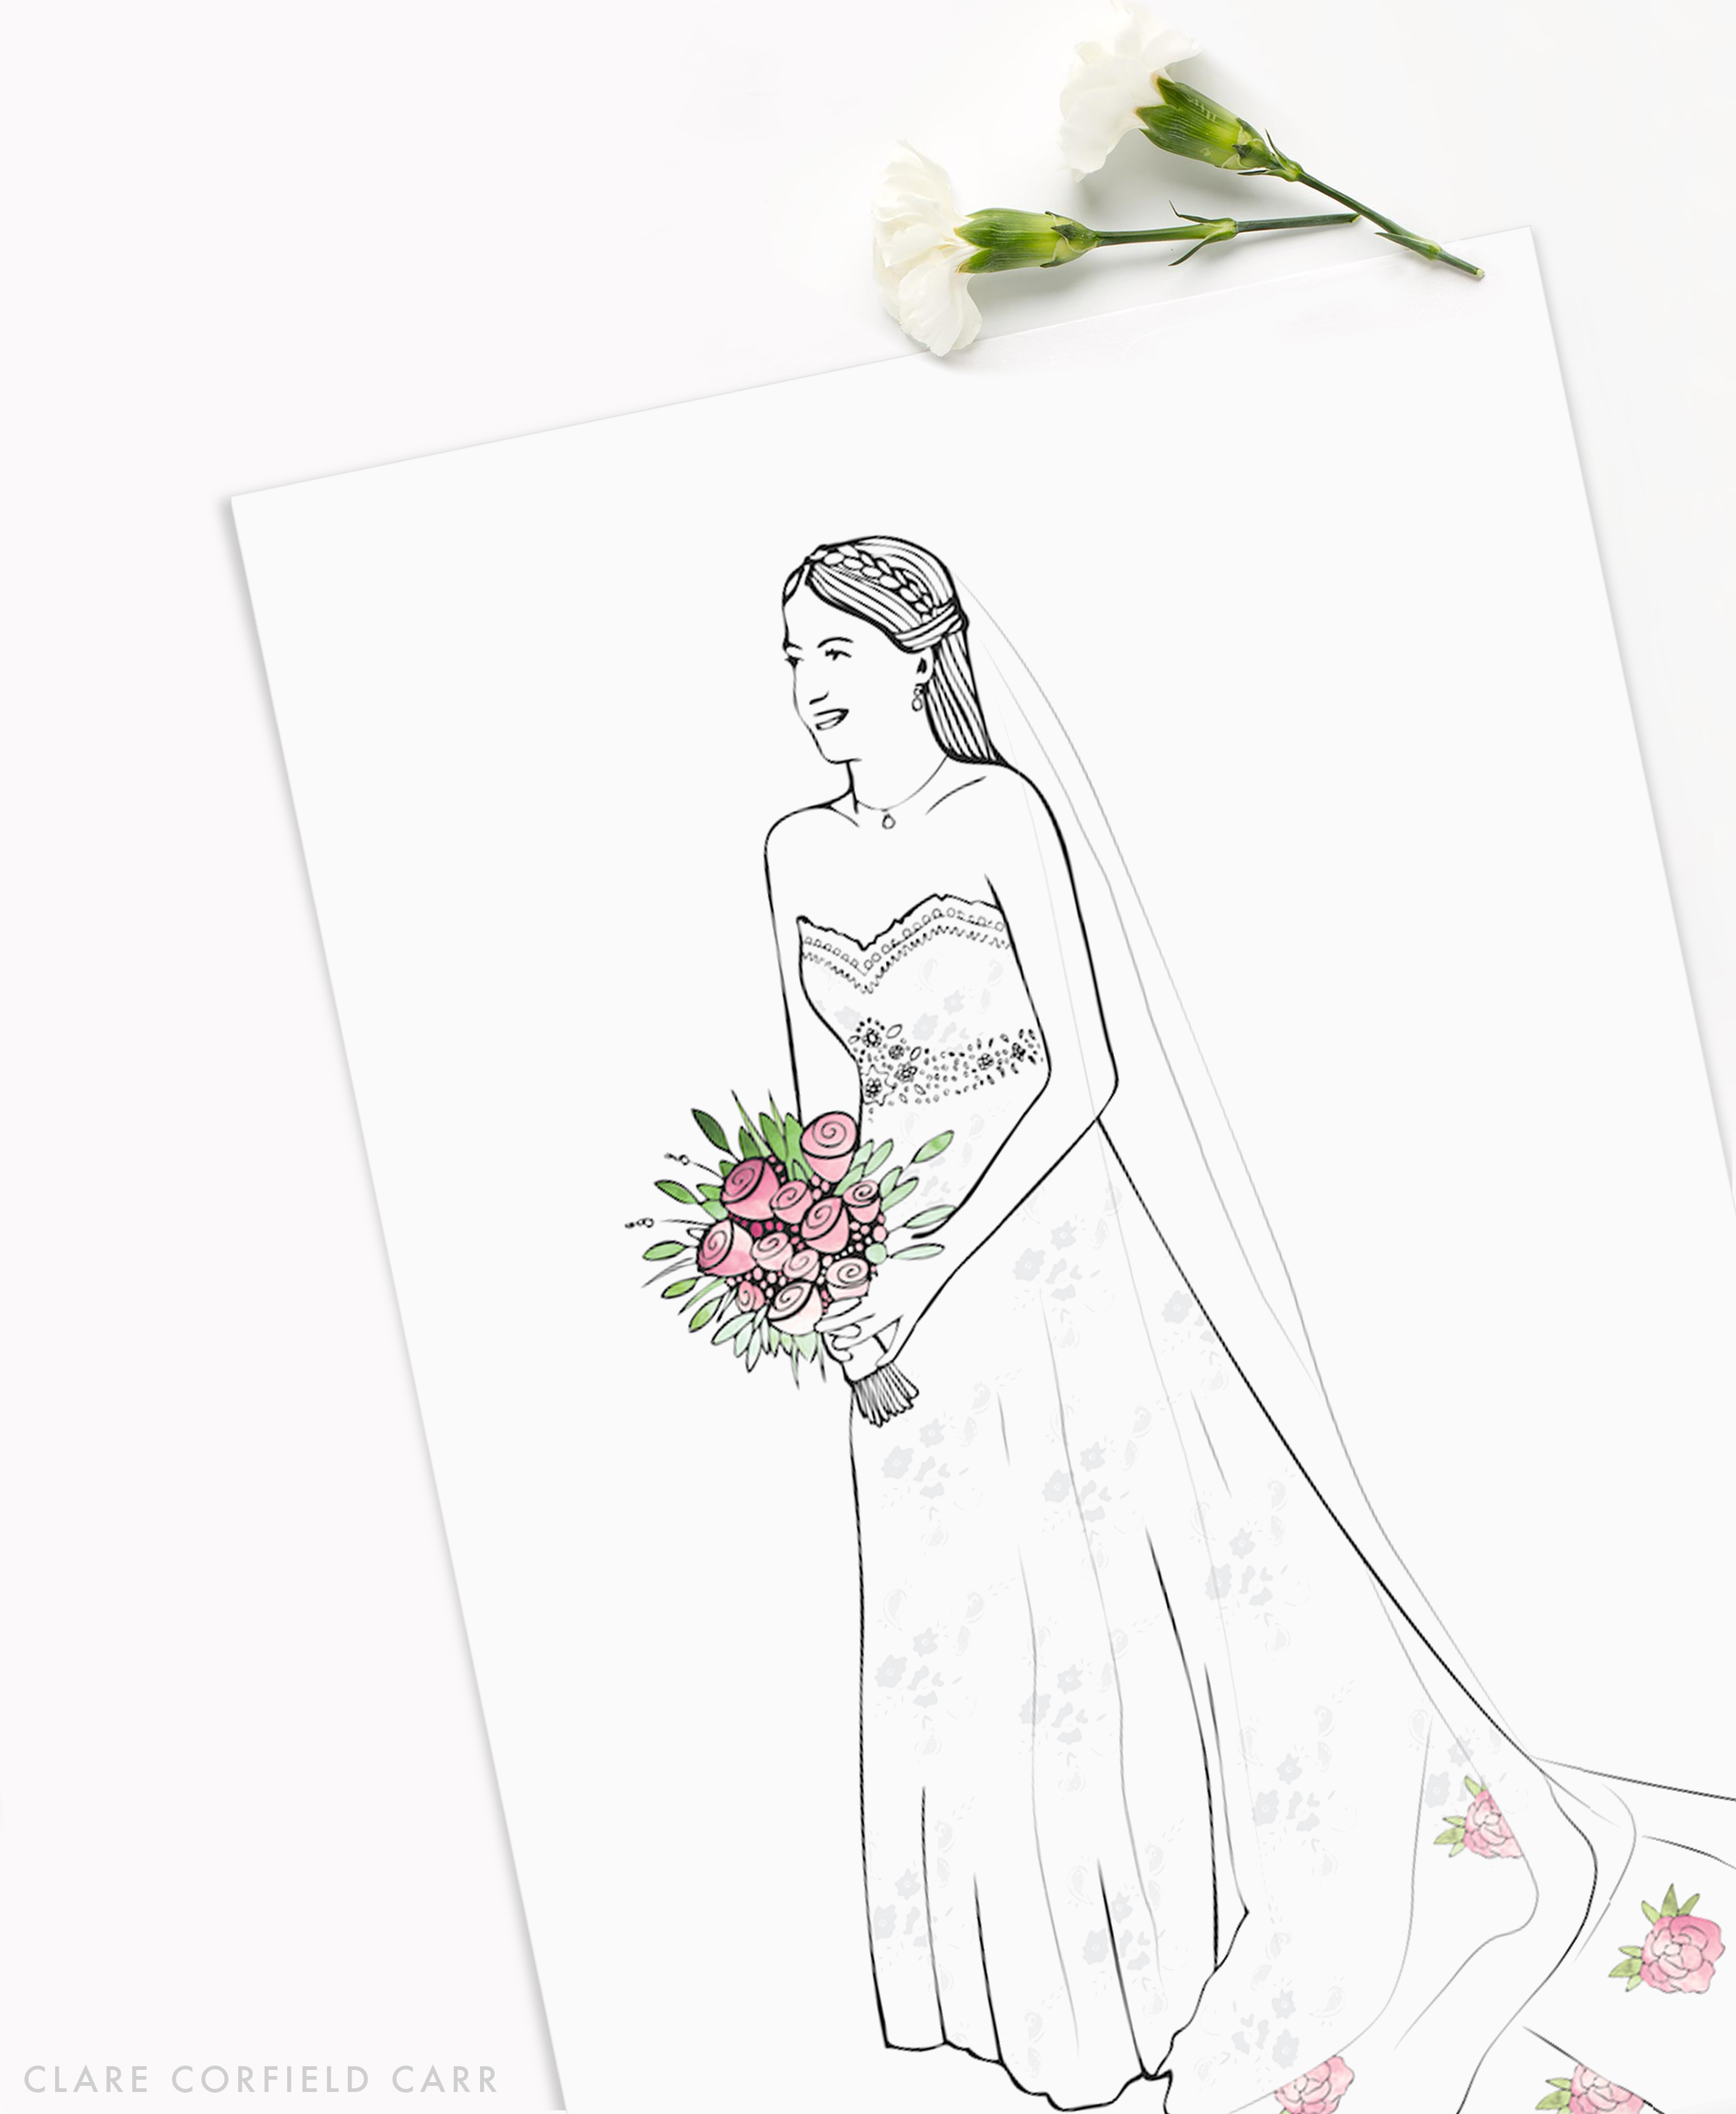 clare corfield carr wedding illustration commission bride drawing